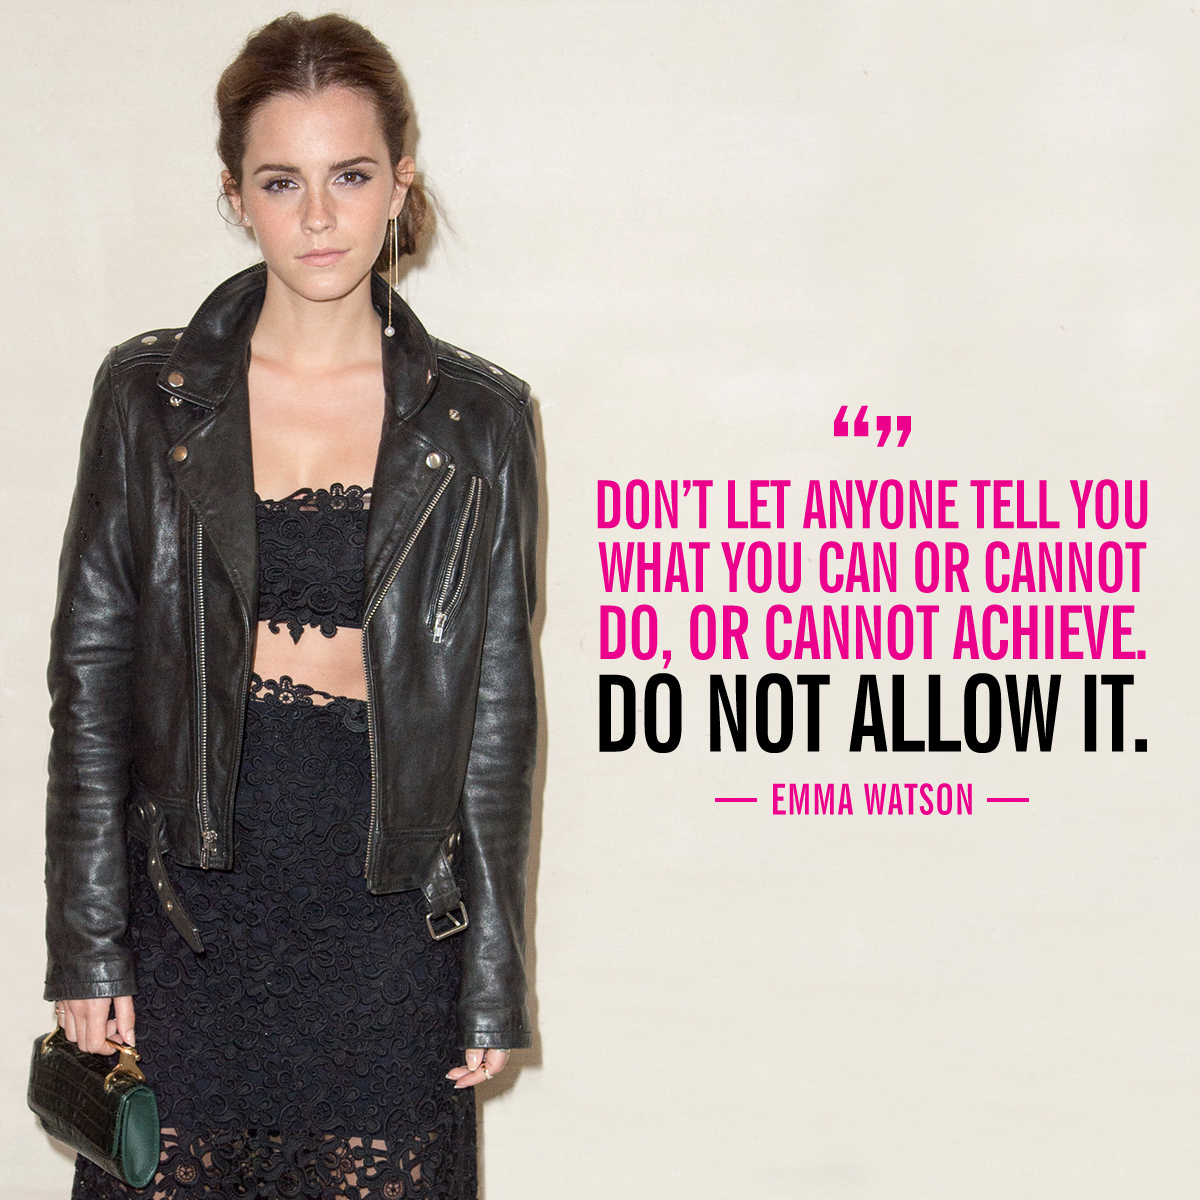 Emma Citations Emma Watson Photo 39162710 Fanpop